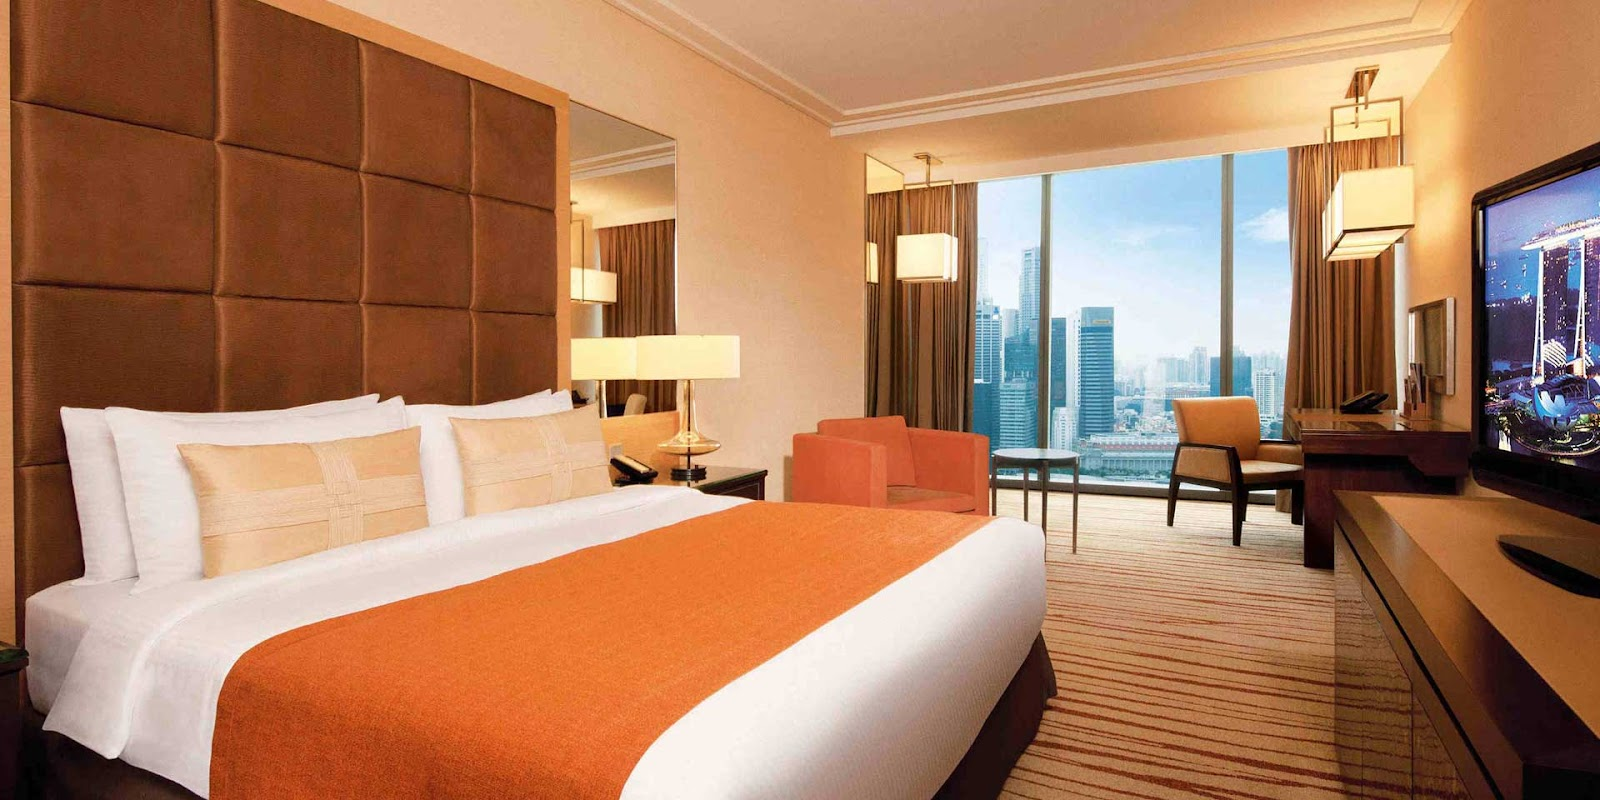 marina bay sands deluxe room.jpg